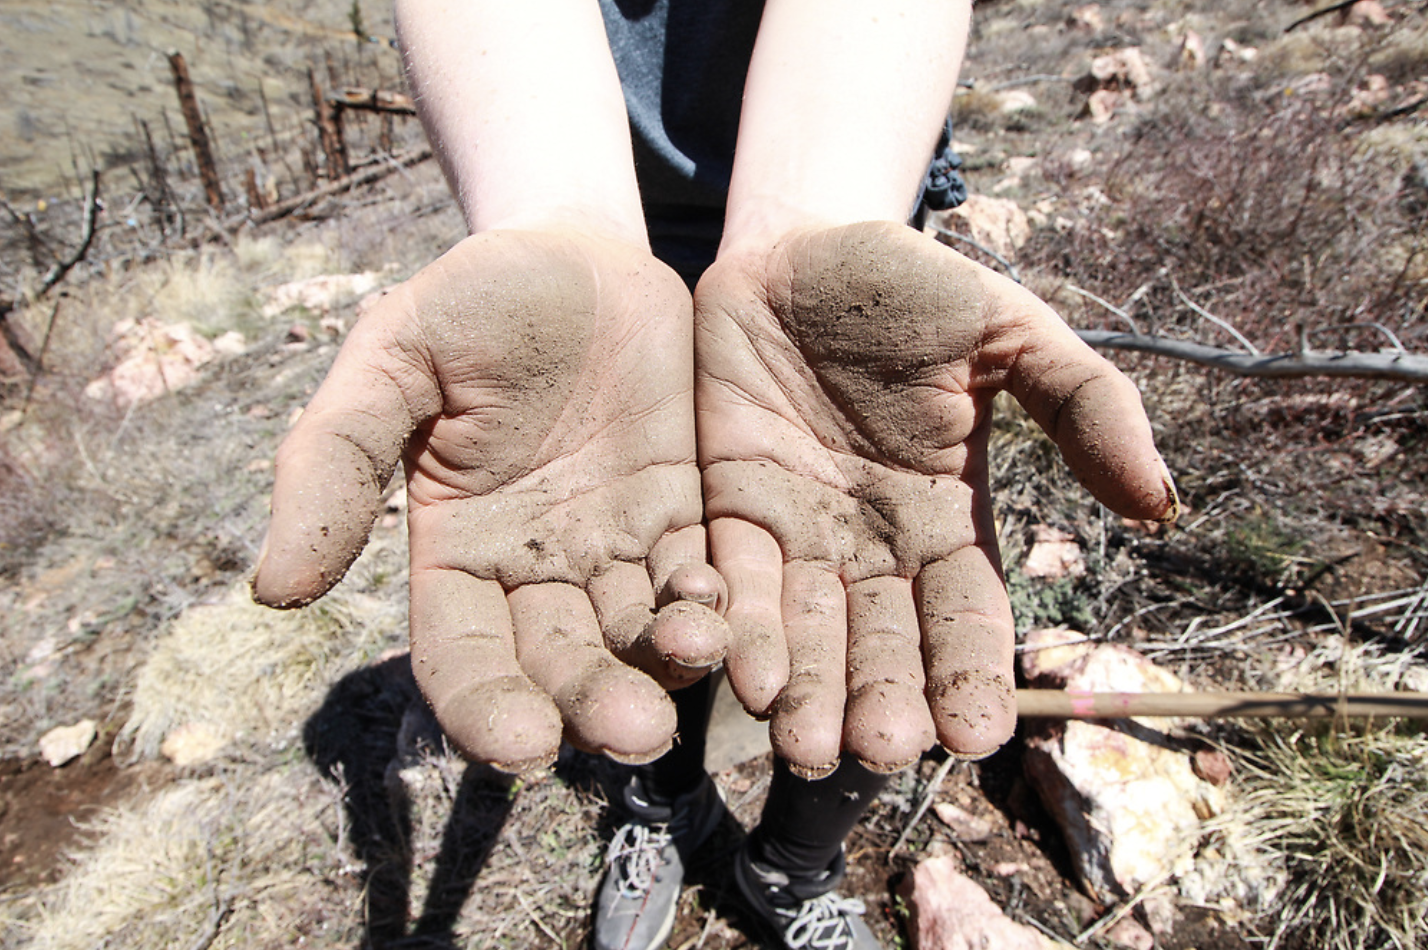 two hands with dirt